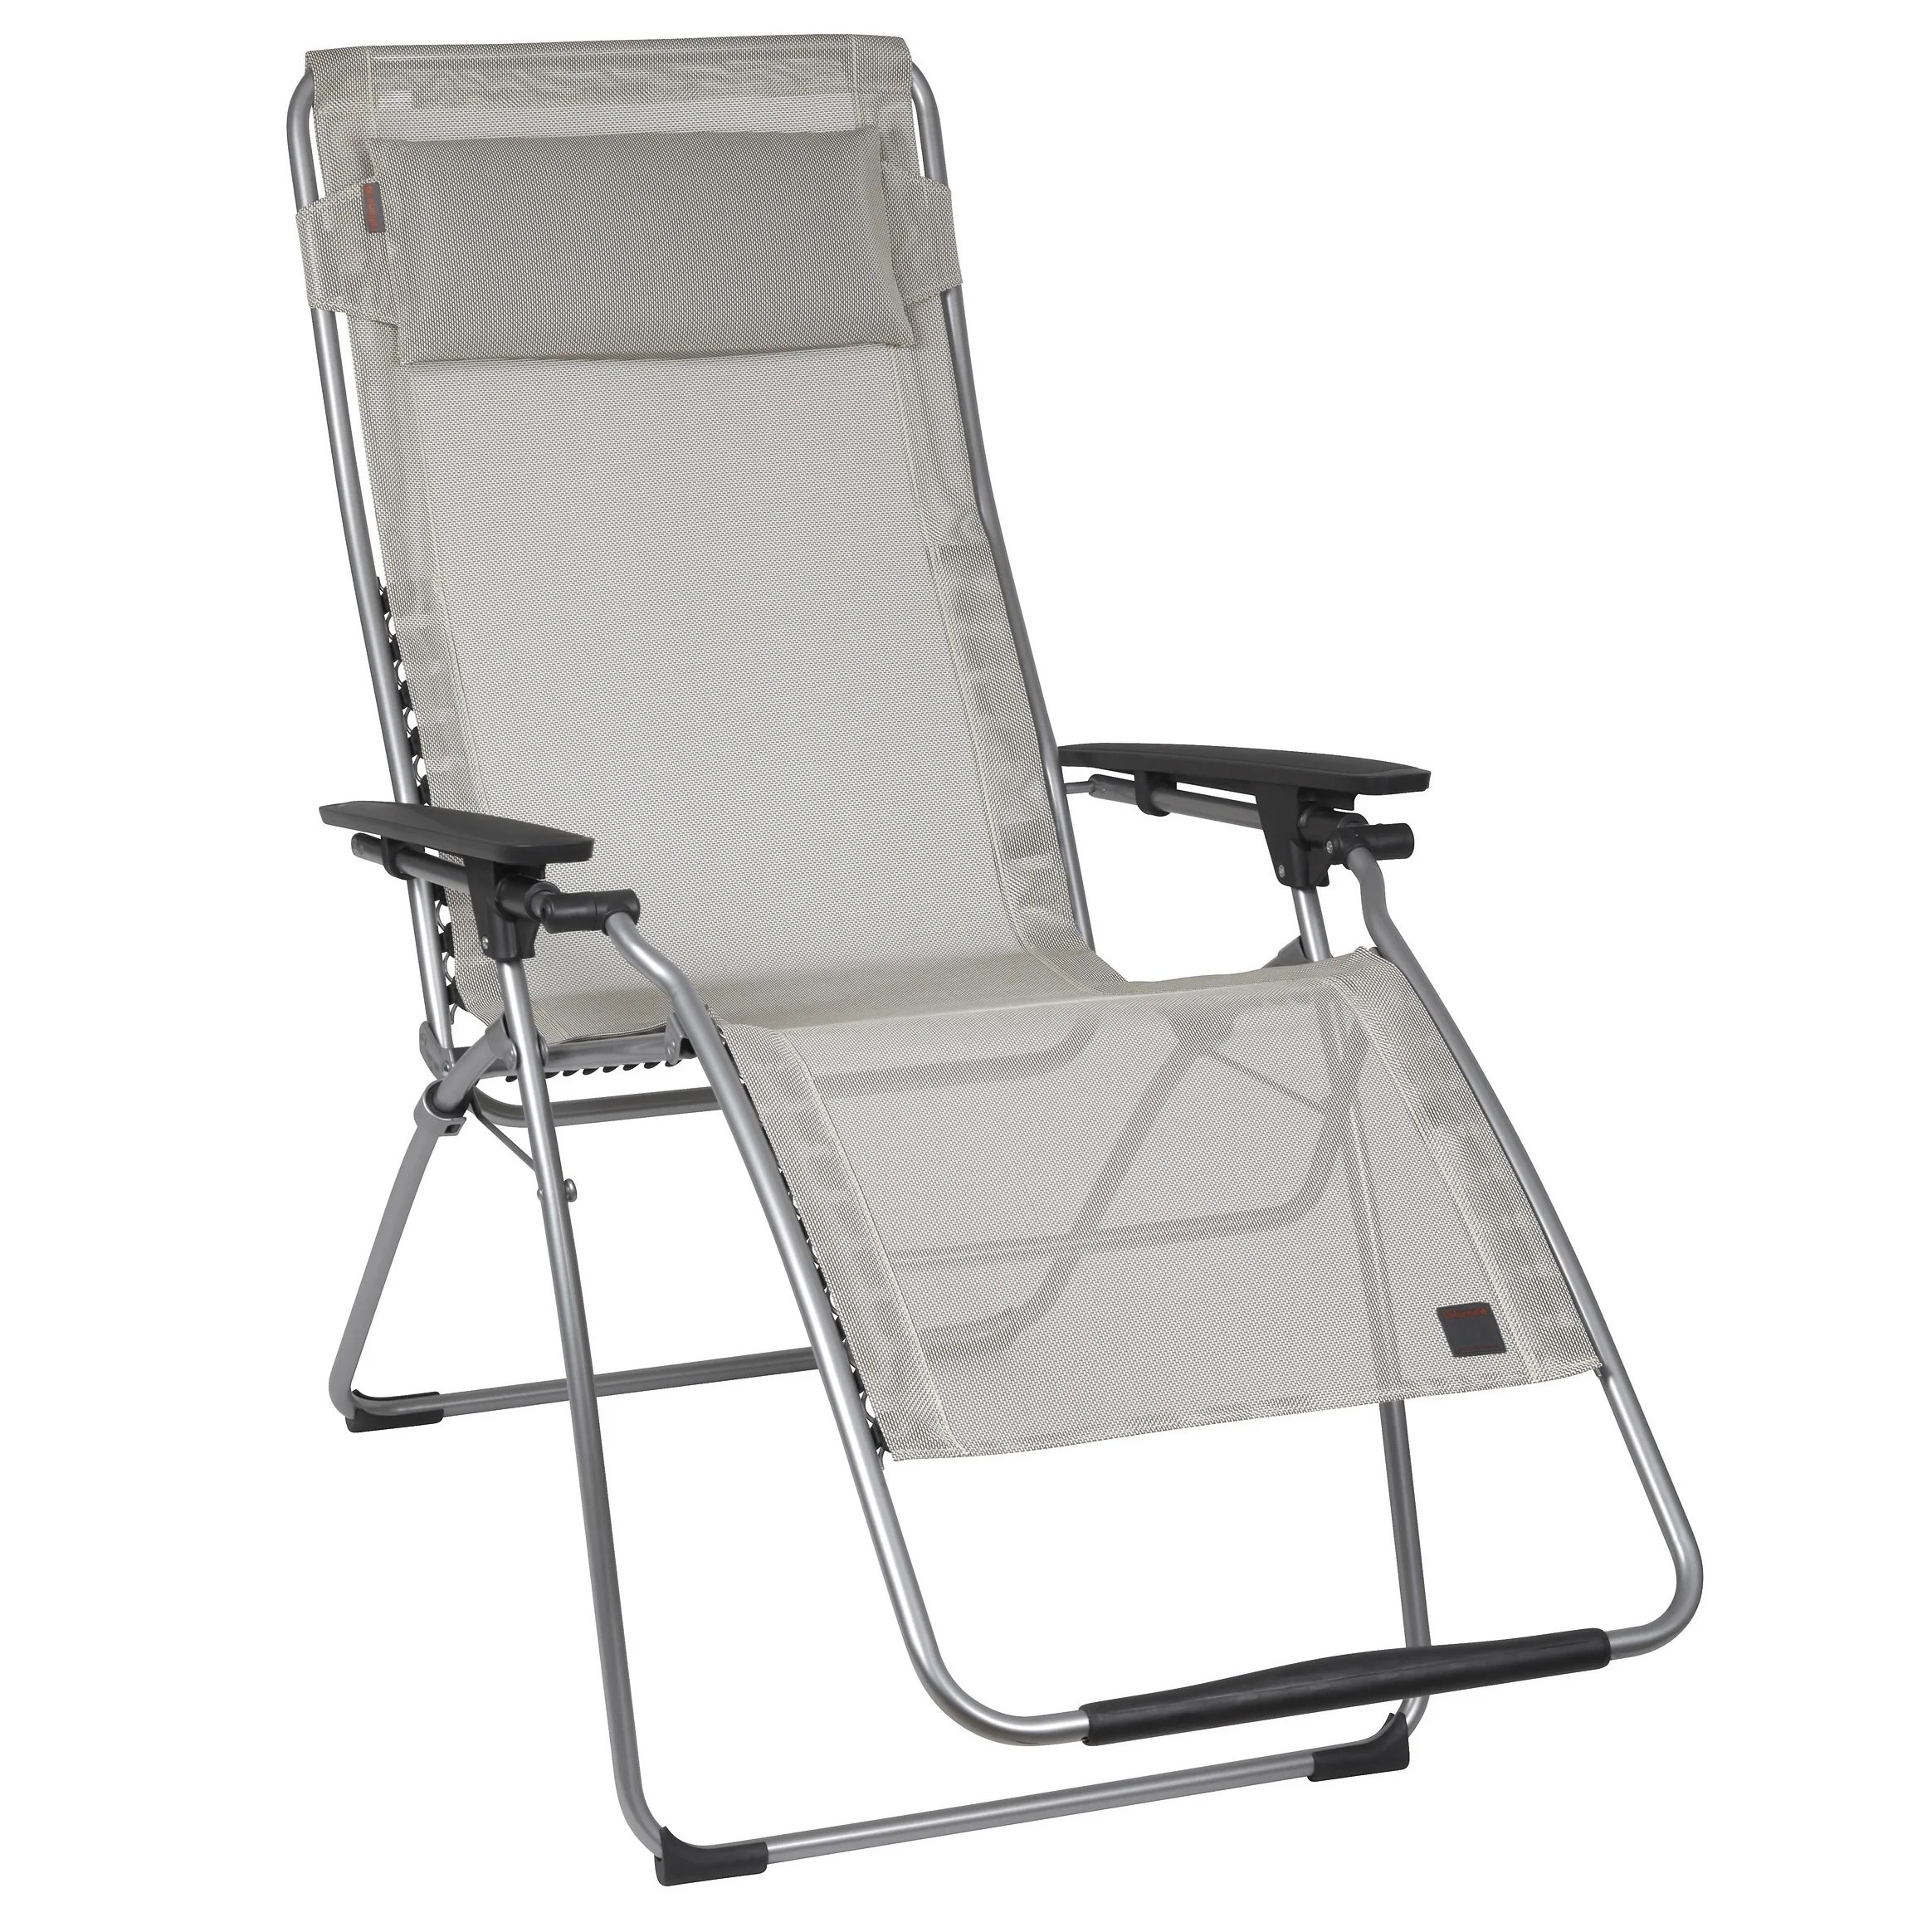 xl zero gravity chair with canopy and footrest white desk chairs target shop lafuma futura silver frame recliner free